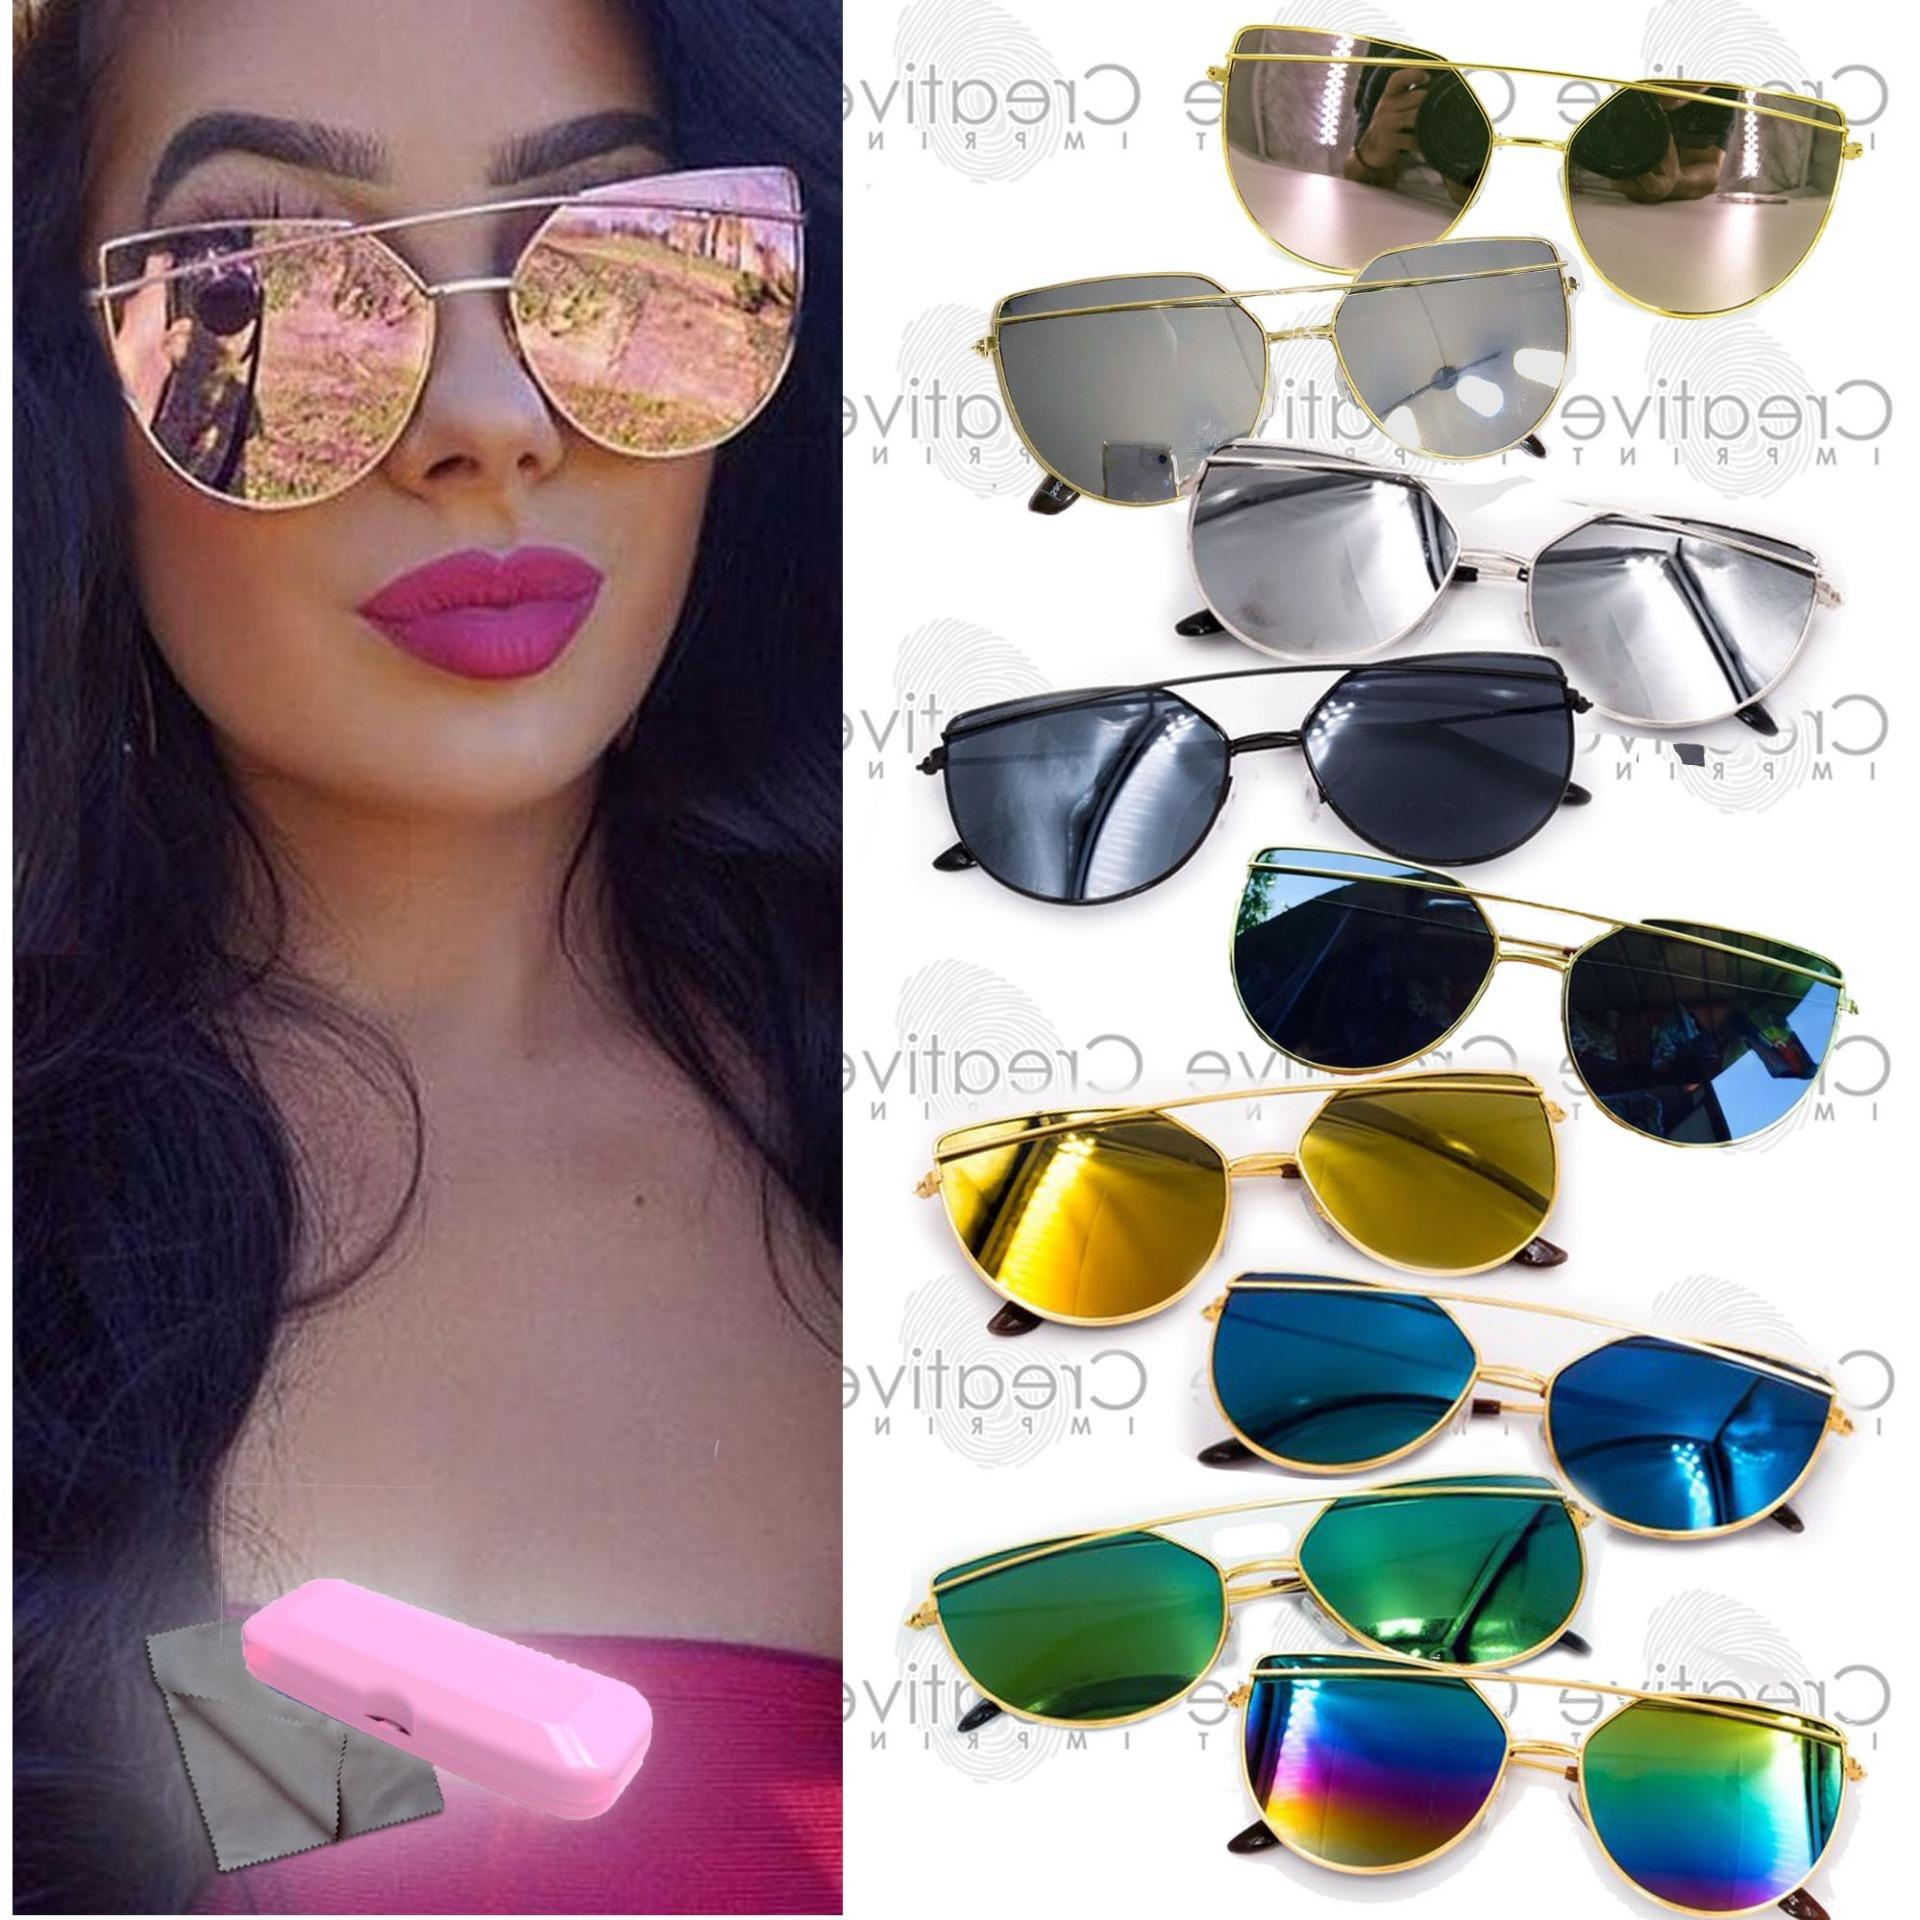 20fd55aa00 Double Bridge Cat Eye Flat Sunnies Sunglasses (FREE CASE WIPER) Shades  Light Metal Lens Frame Mirror Trendy Korean Fashion Eyewear UVA UVB  Protection